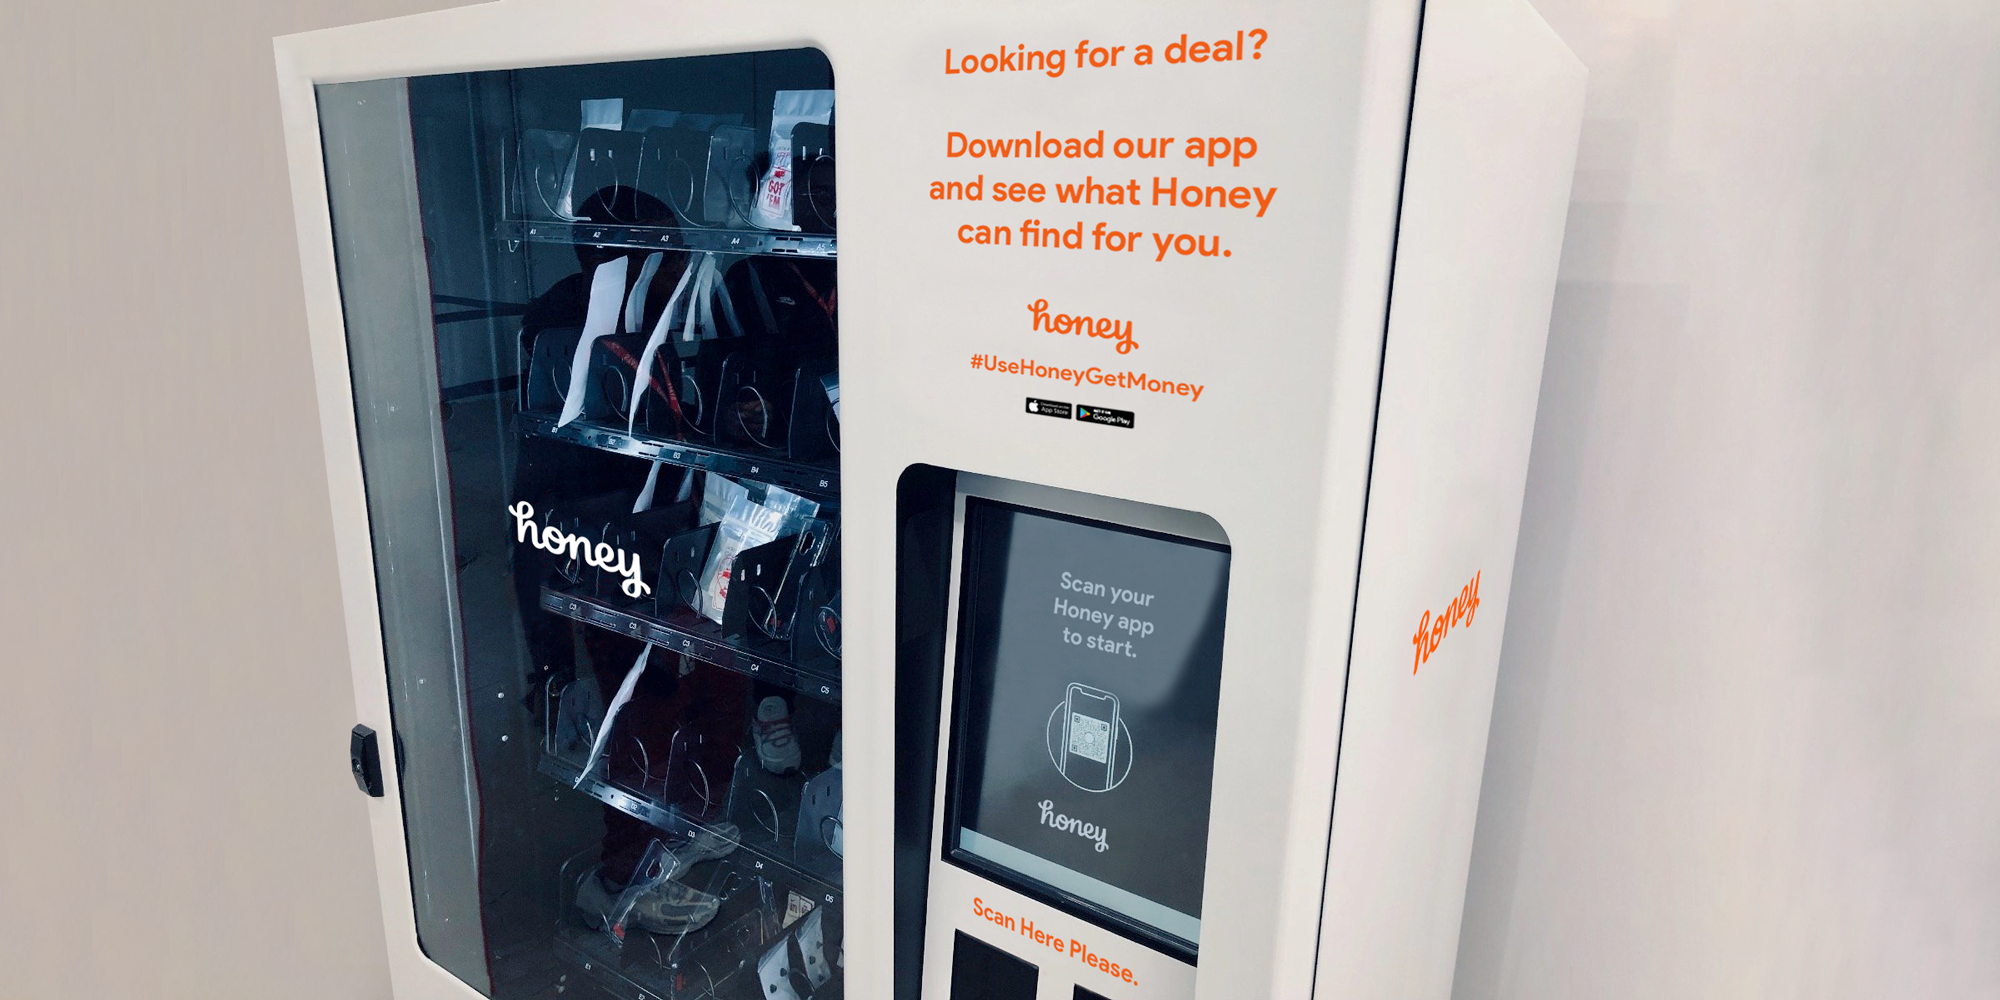 We'll set up vending machines that feature great deals — but you can only use it if you download the Honey app.